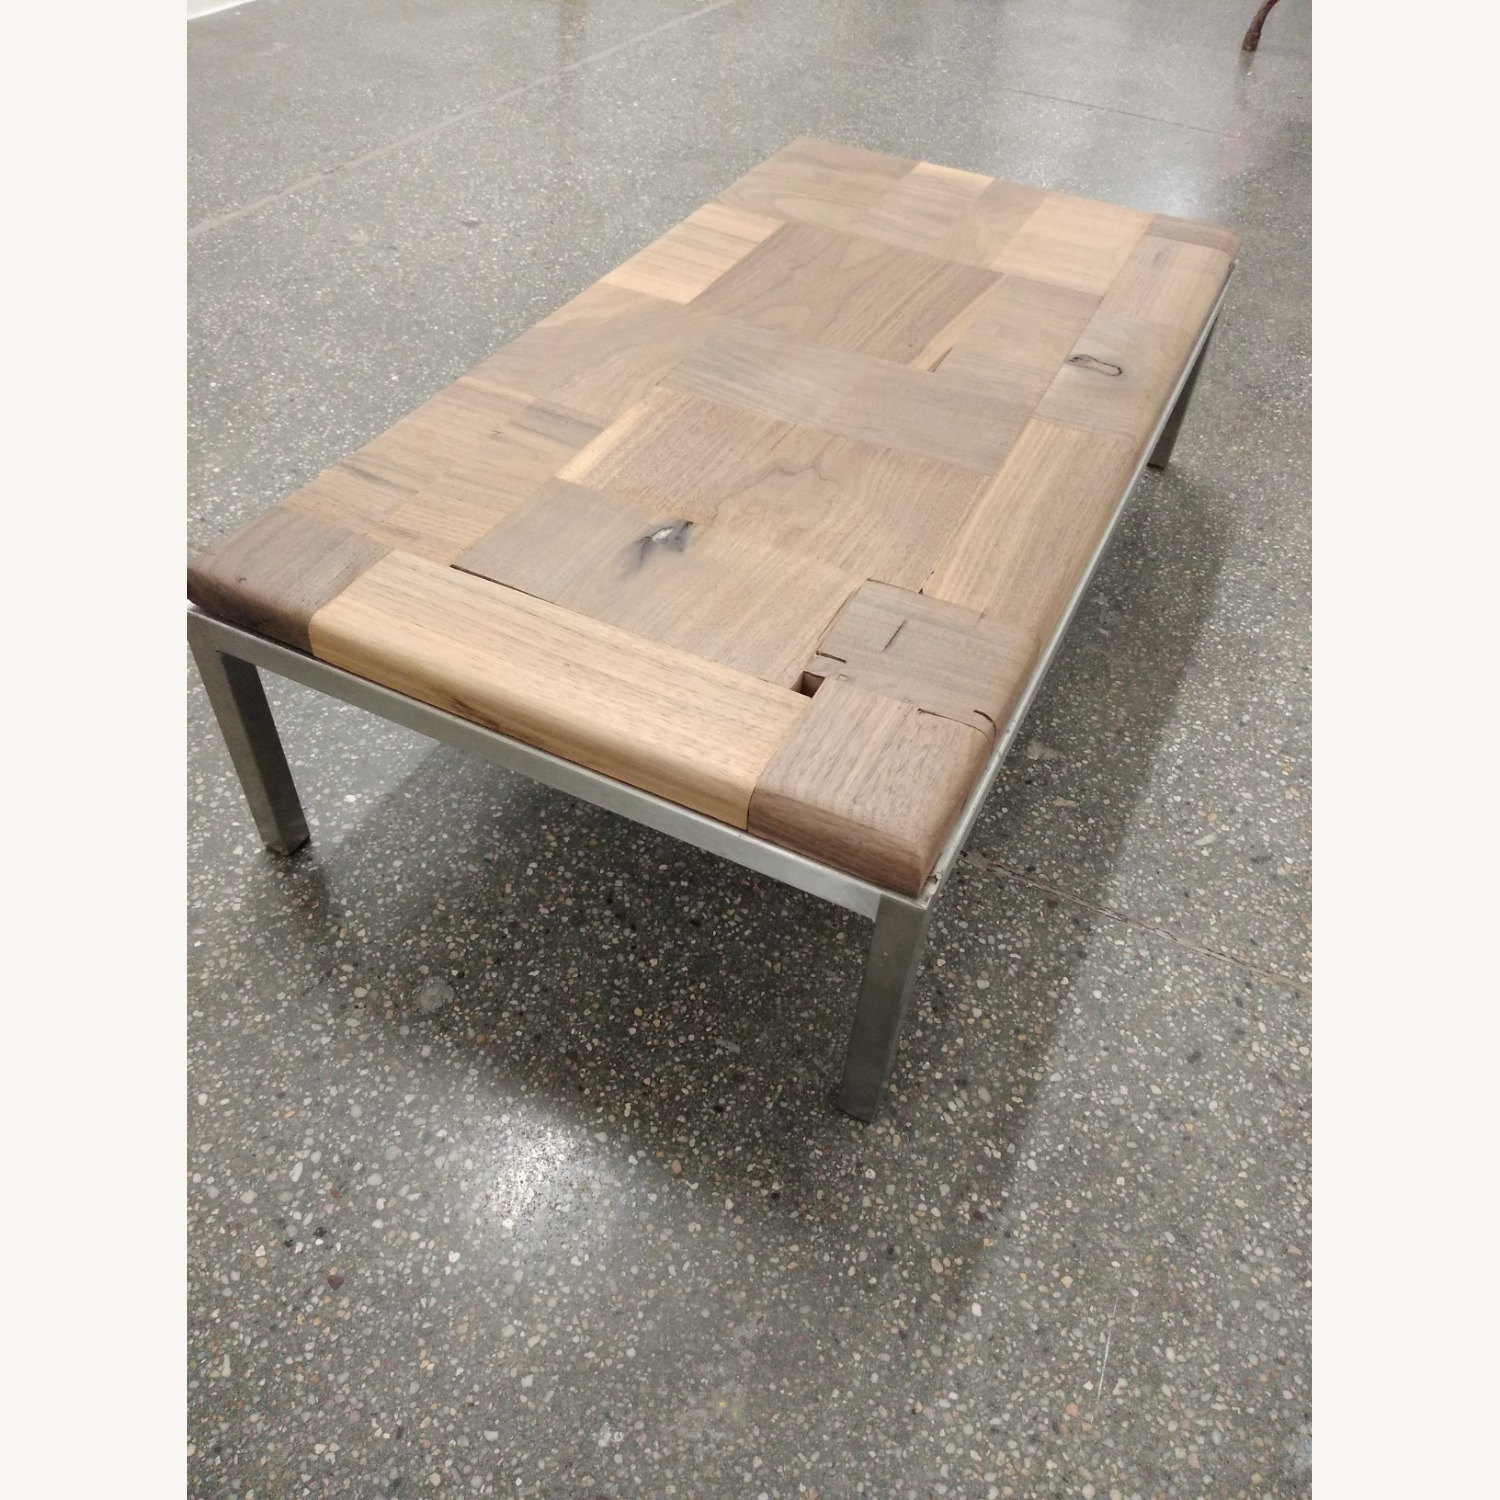 Restoration Hardware Solid Walnut Mosaic Coffee Table - image-10